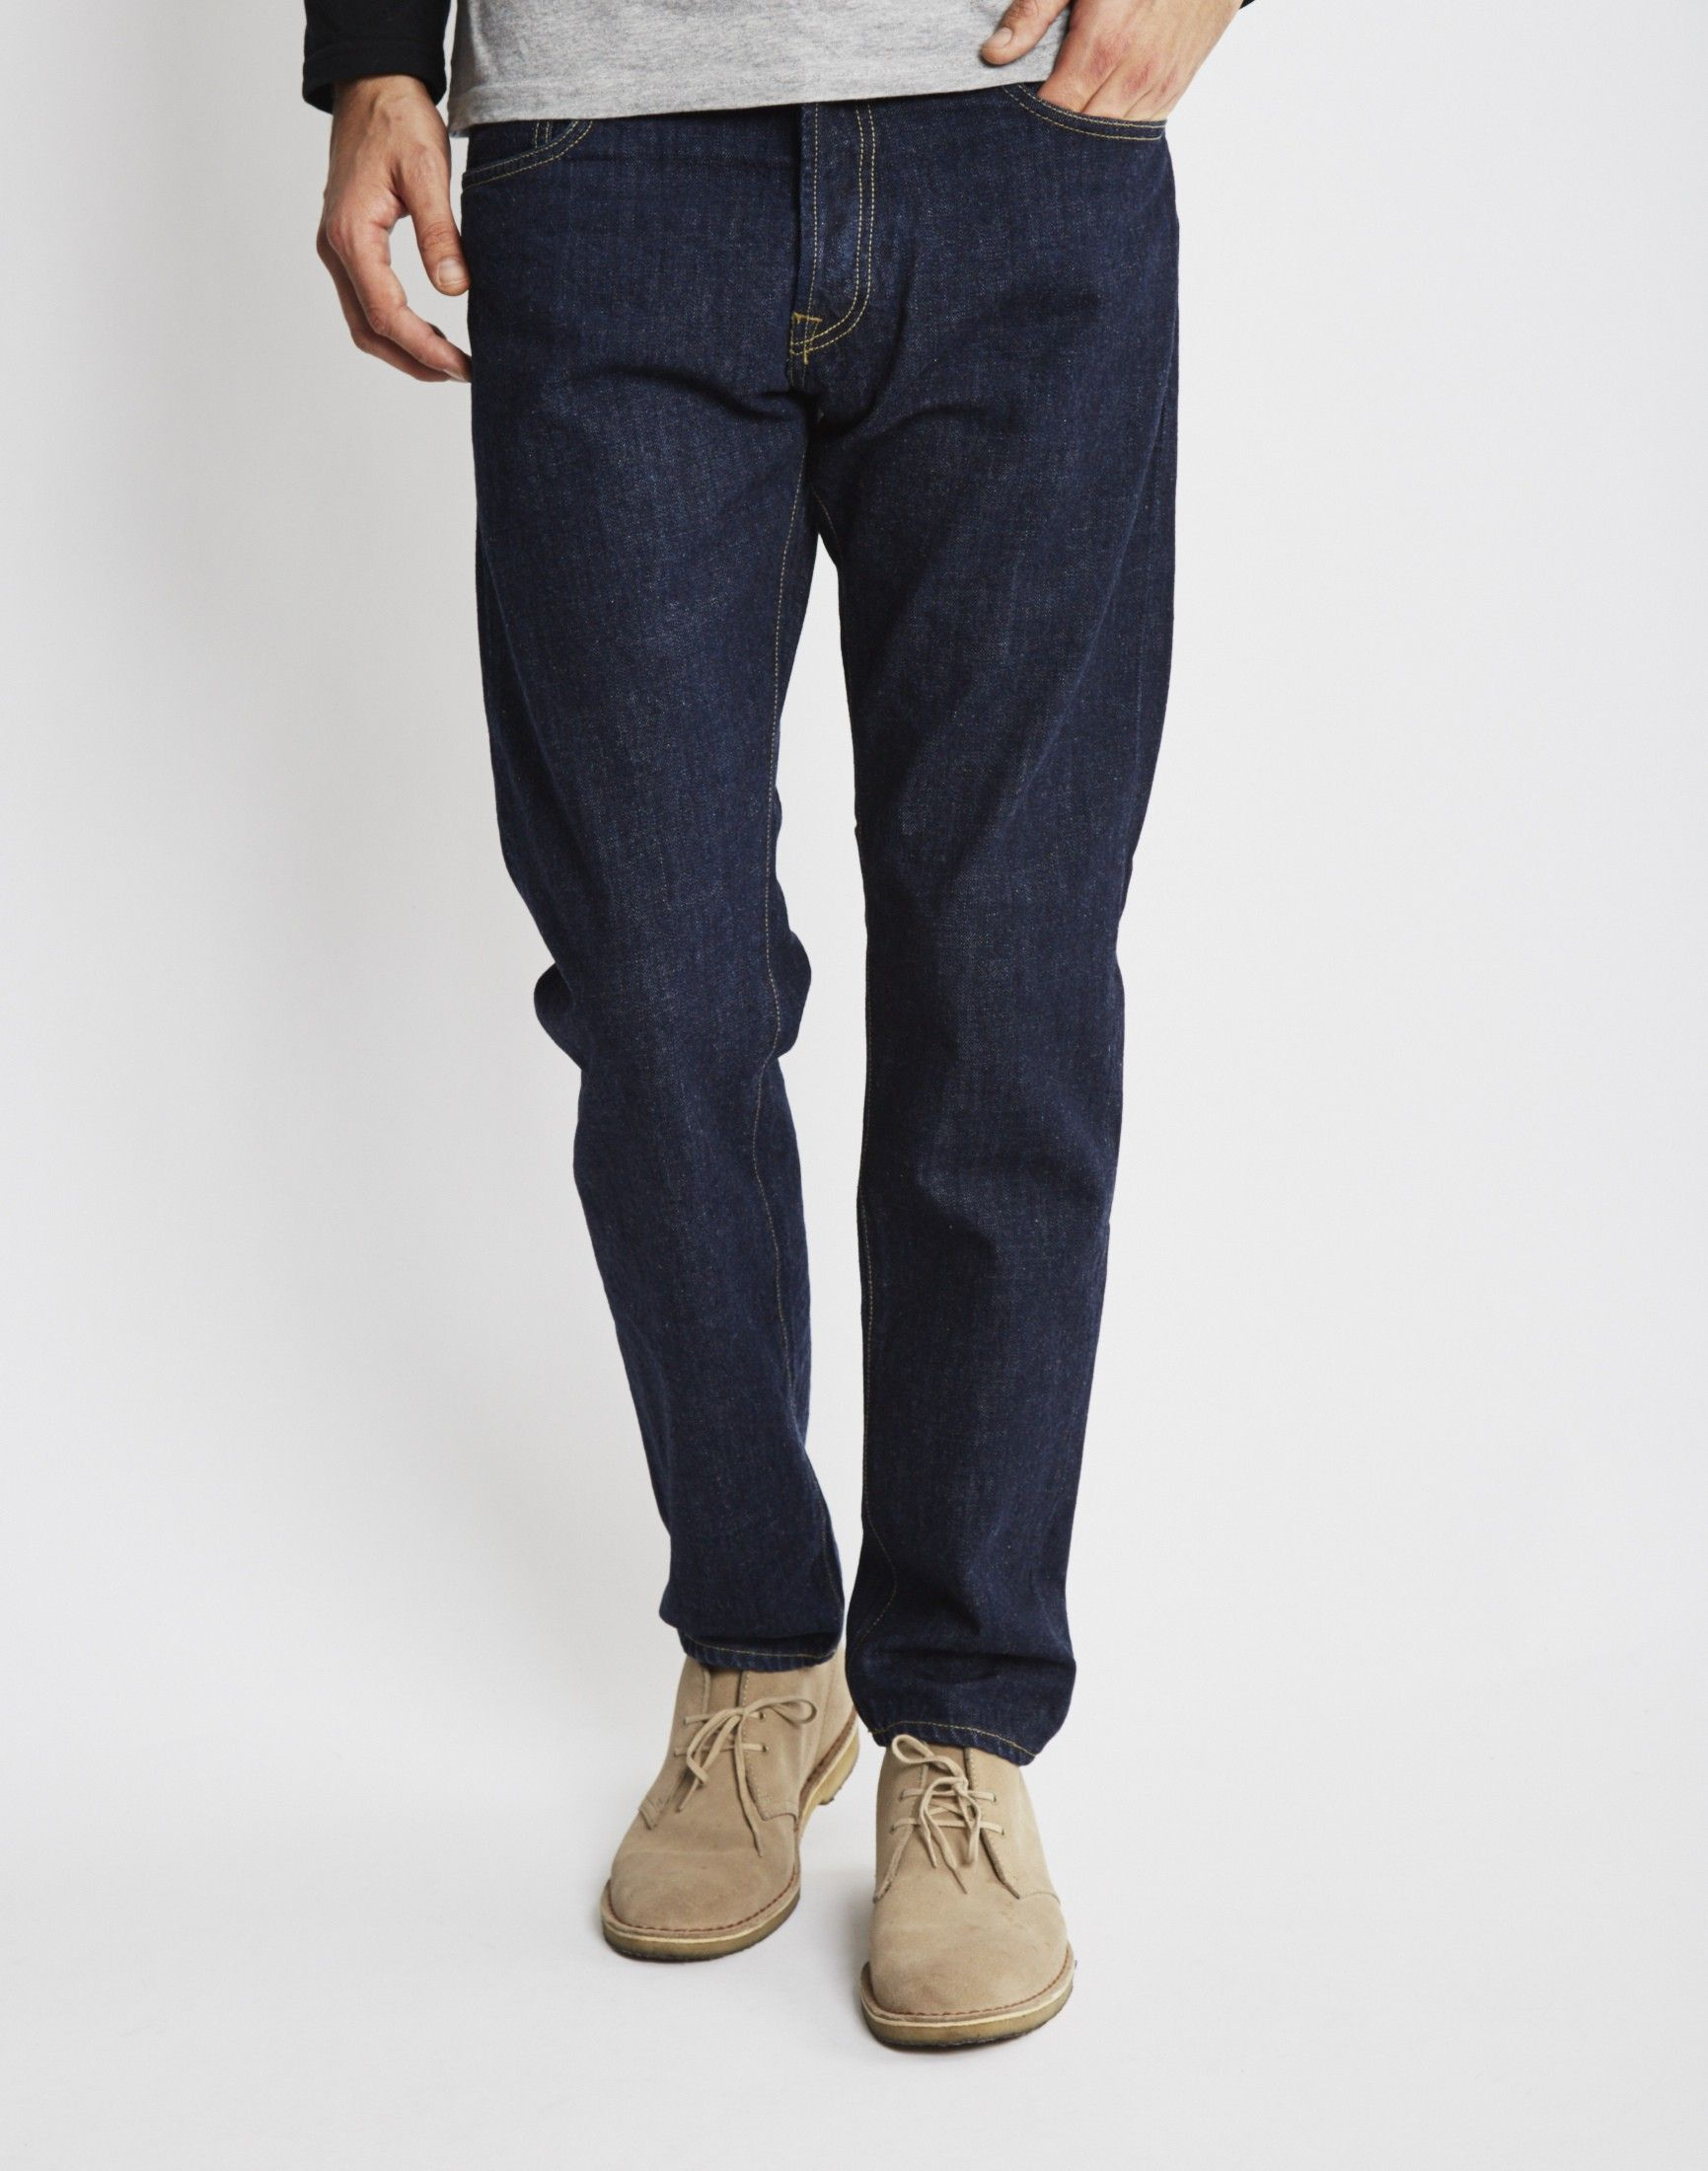 5d406a73c09 Carhartt WIP Klondike 5 Pocket Relaxed Tapered Jean at The Idle Man ...